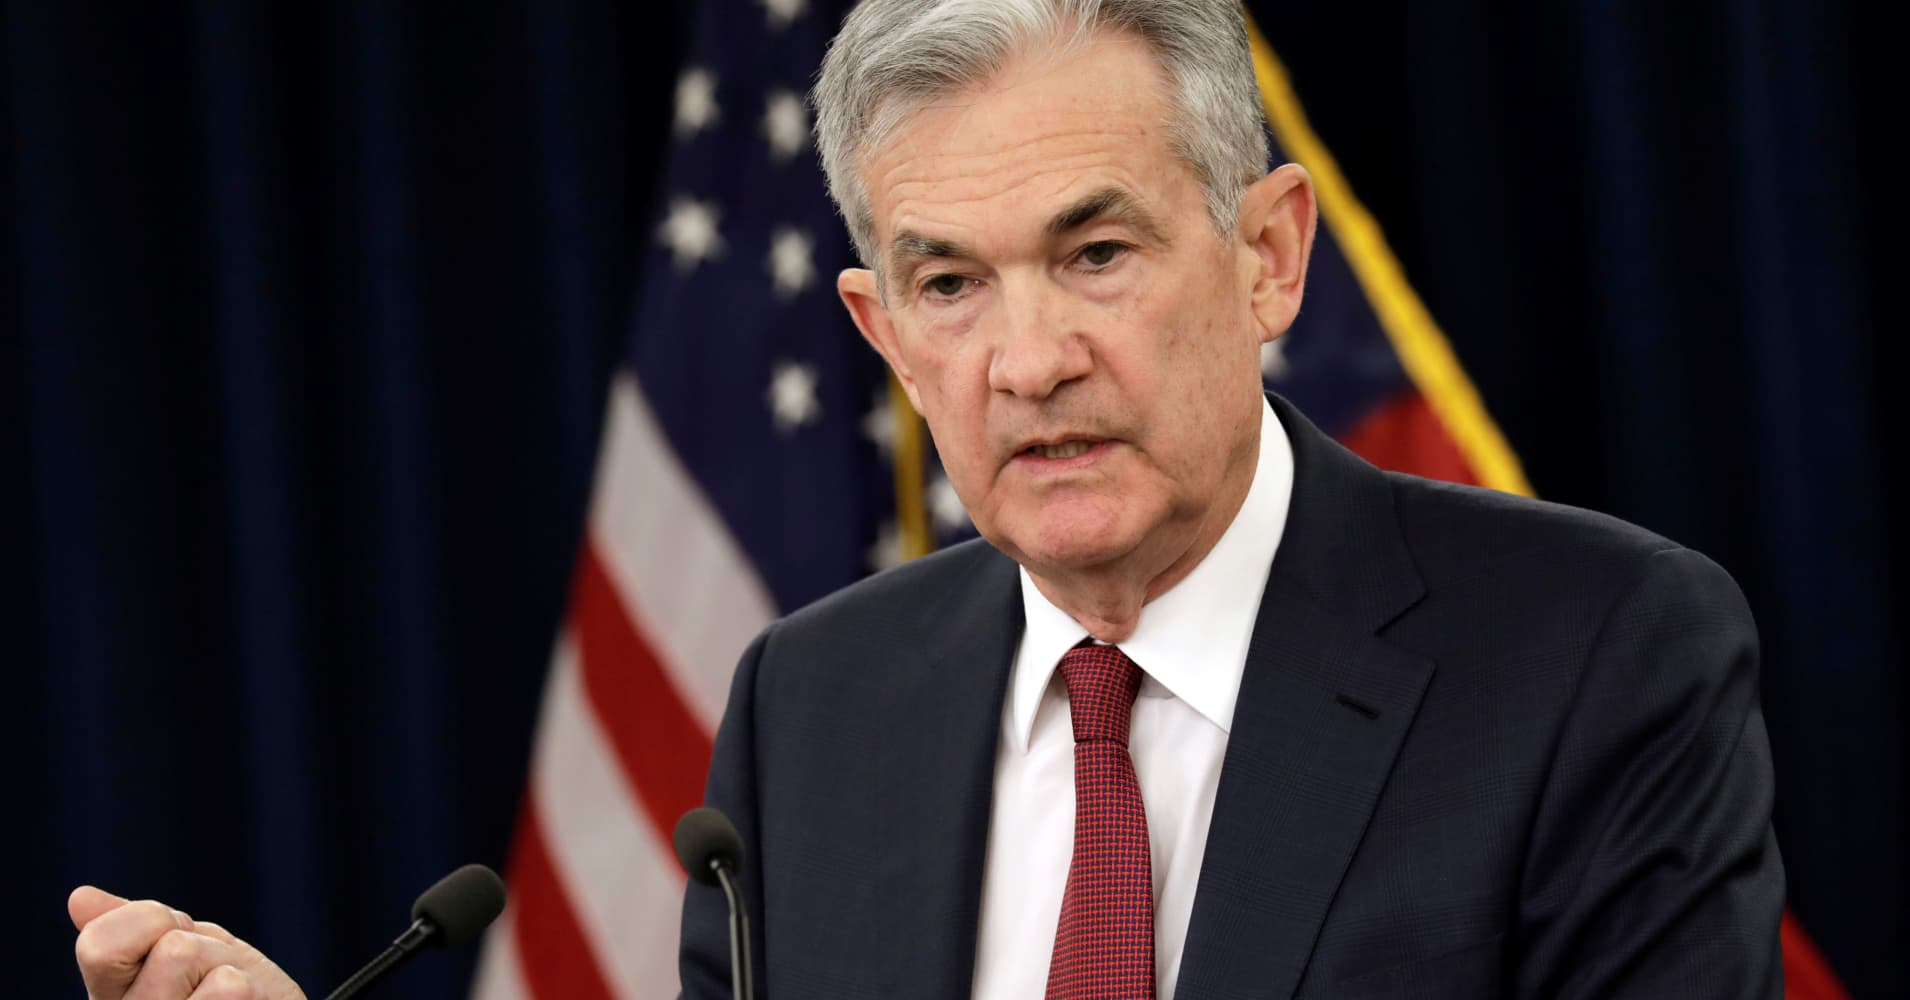 Fed's Powell reveals what he thinks is the biggest challenge over the next decade